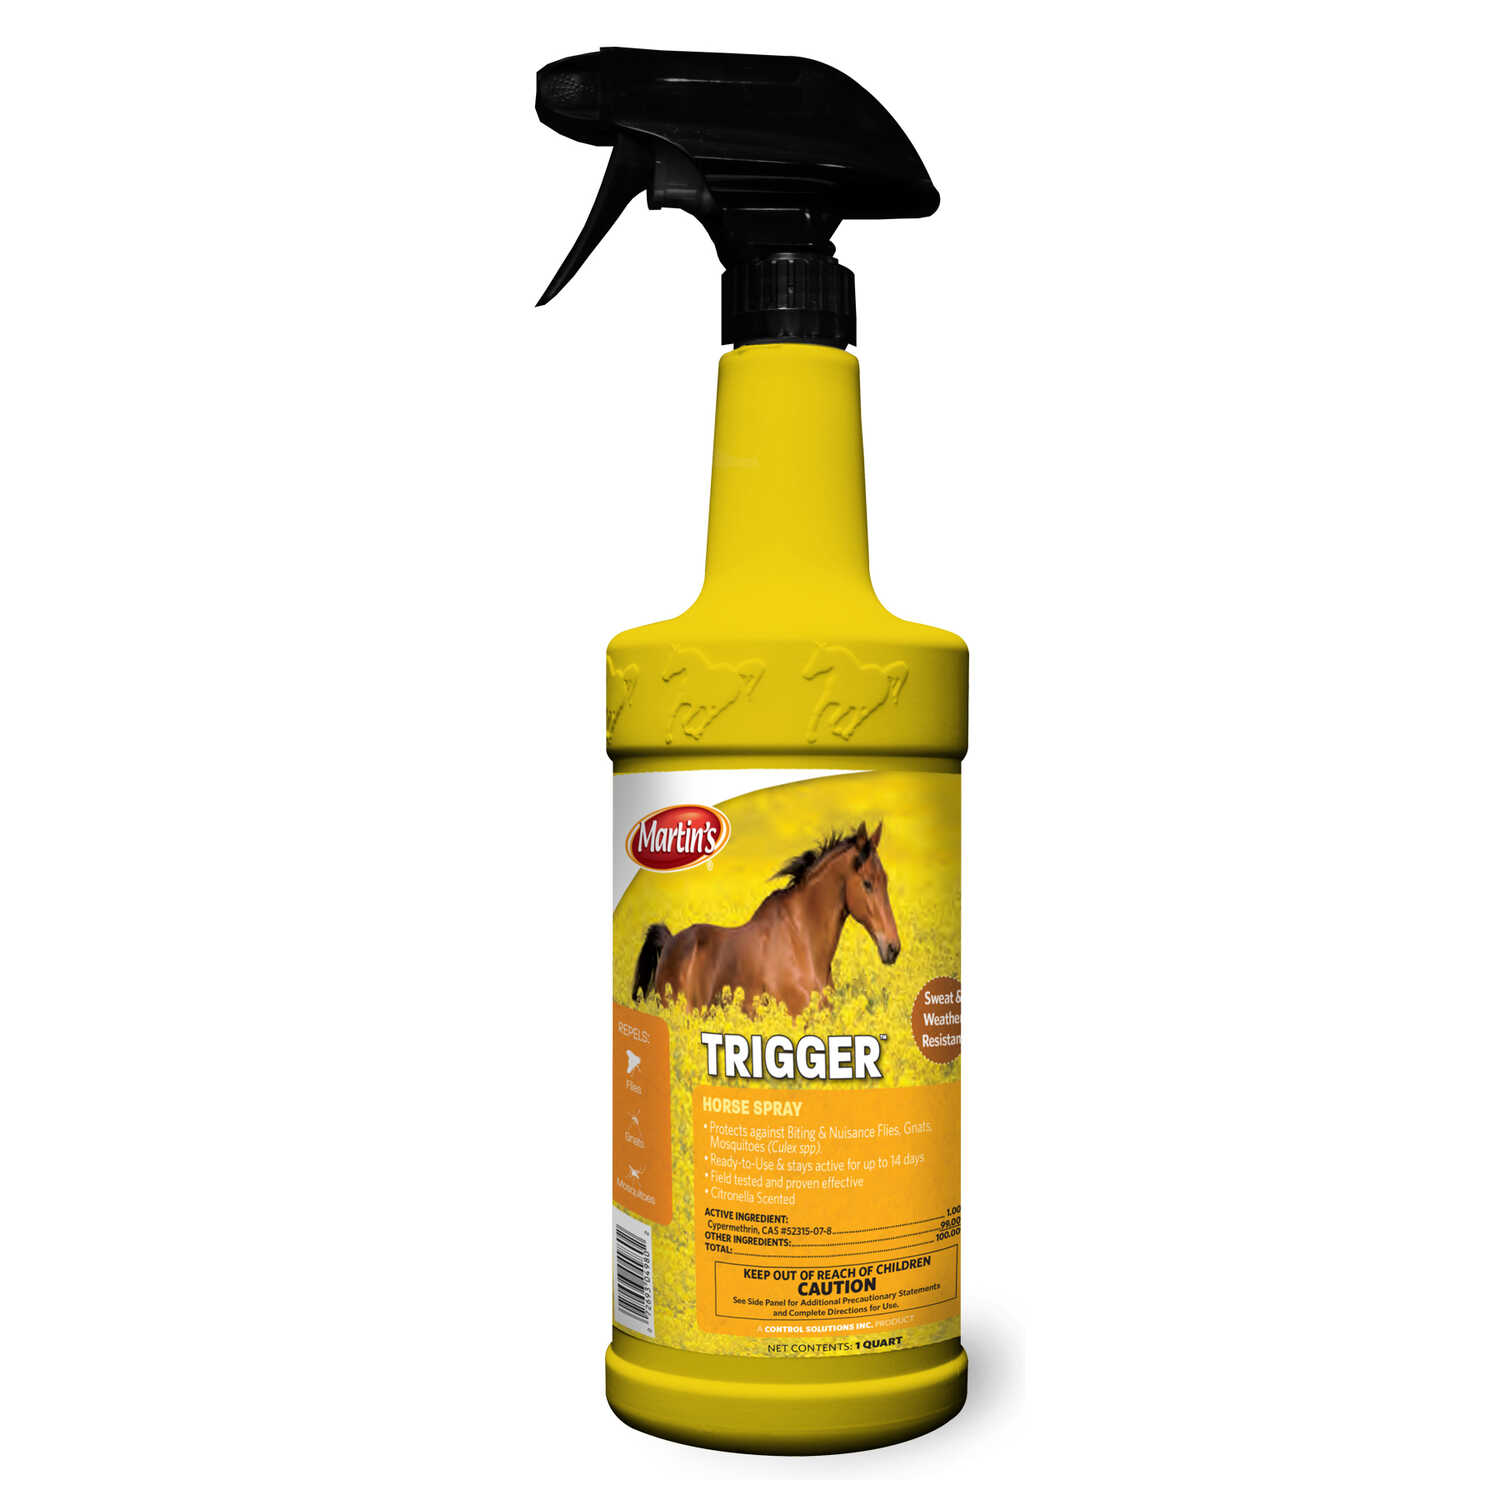 Martin's  Trigger Horse Spray  Insect Killer  1 qt.